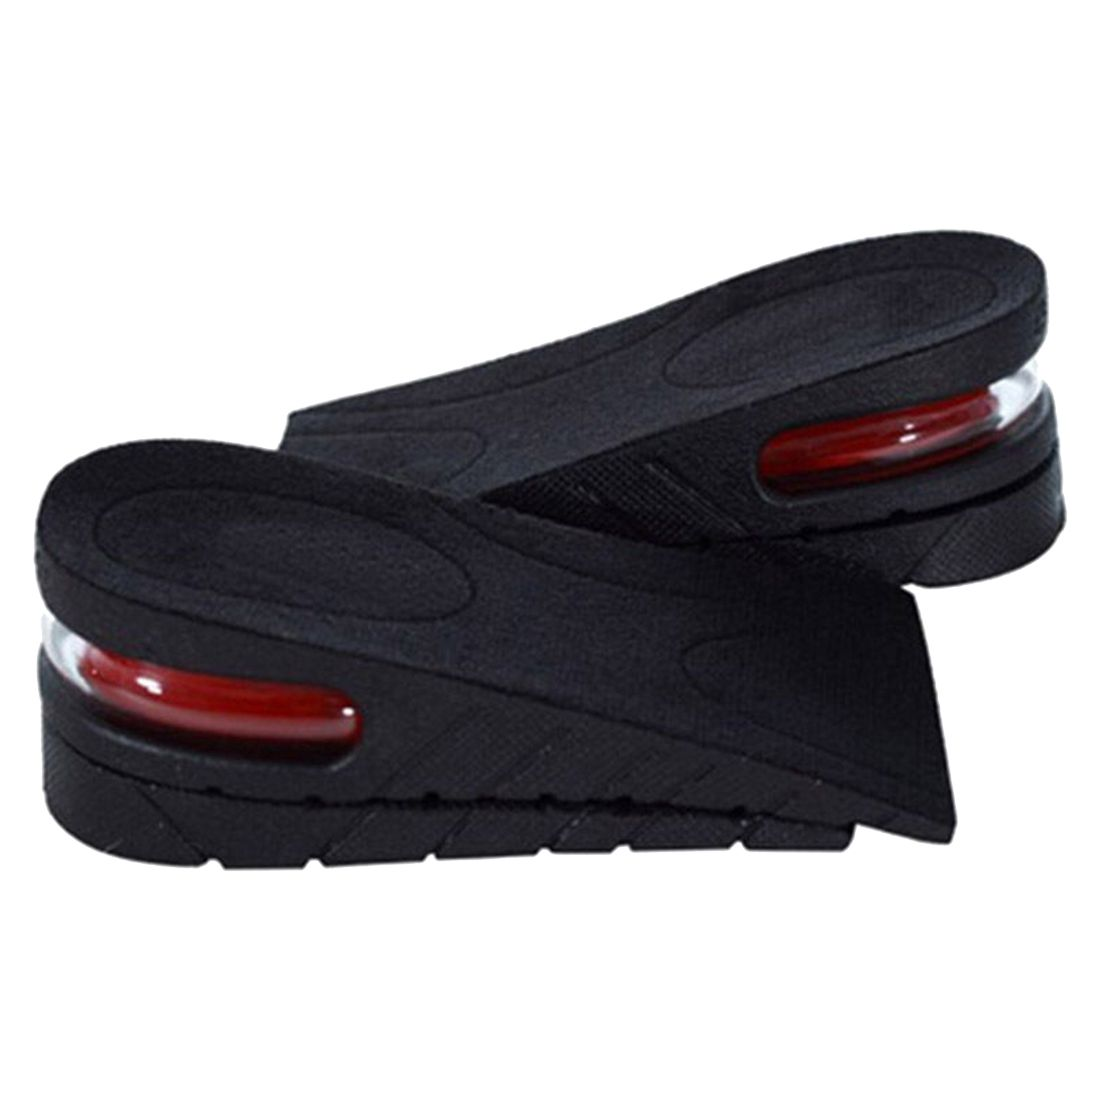 Men Women Shoe Insole Air Cushion Heel insert Increase Tall Height Lift 5cm 2016 2 pcs invisible shoe taller insole 6 color increasing height short helper half lift air 2 5cm cushion insert 6 colors